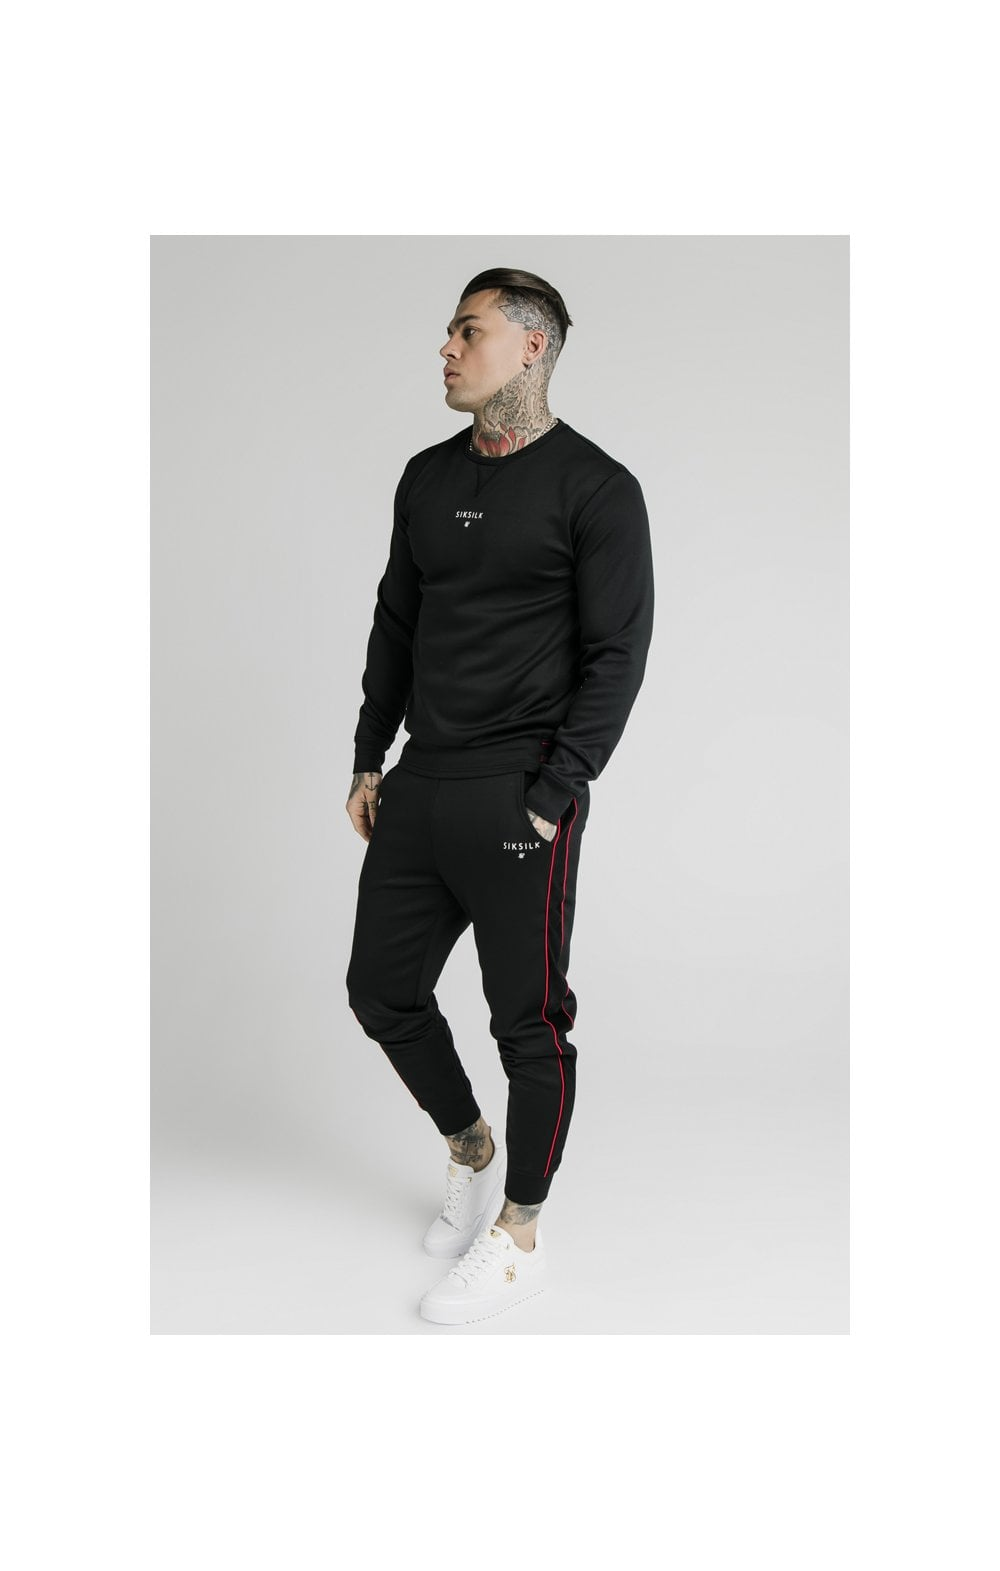 SikSilk Imperial Crew Neck Sweater - Black (2)